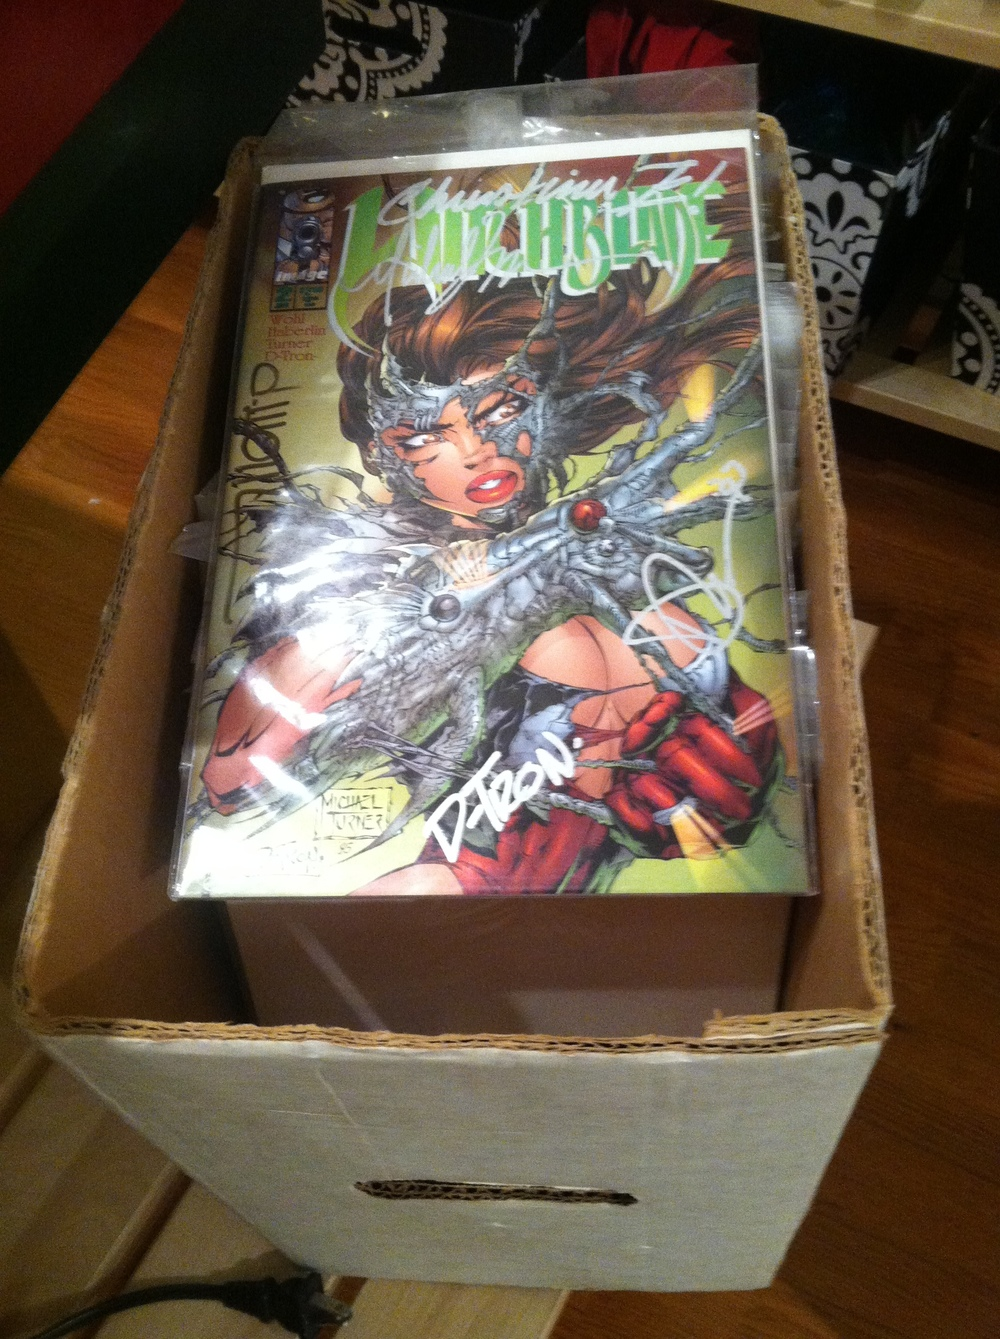 My Witchblade #2, signed by all of the key artists. At the time, I was very excited over this.